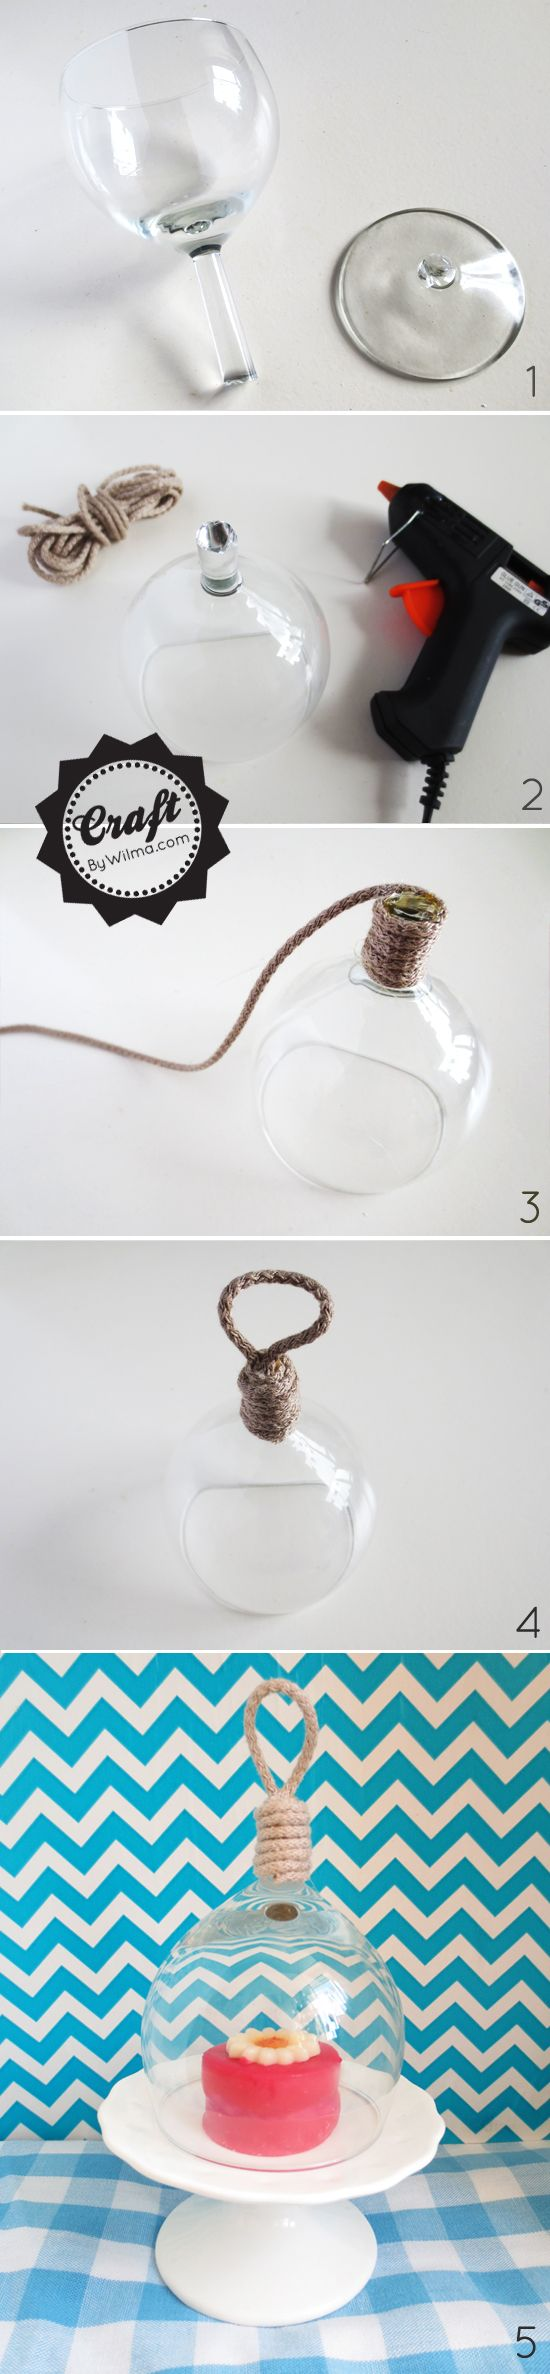 DIY - Mini bell jar from a broken wine glass how to